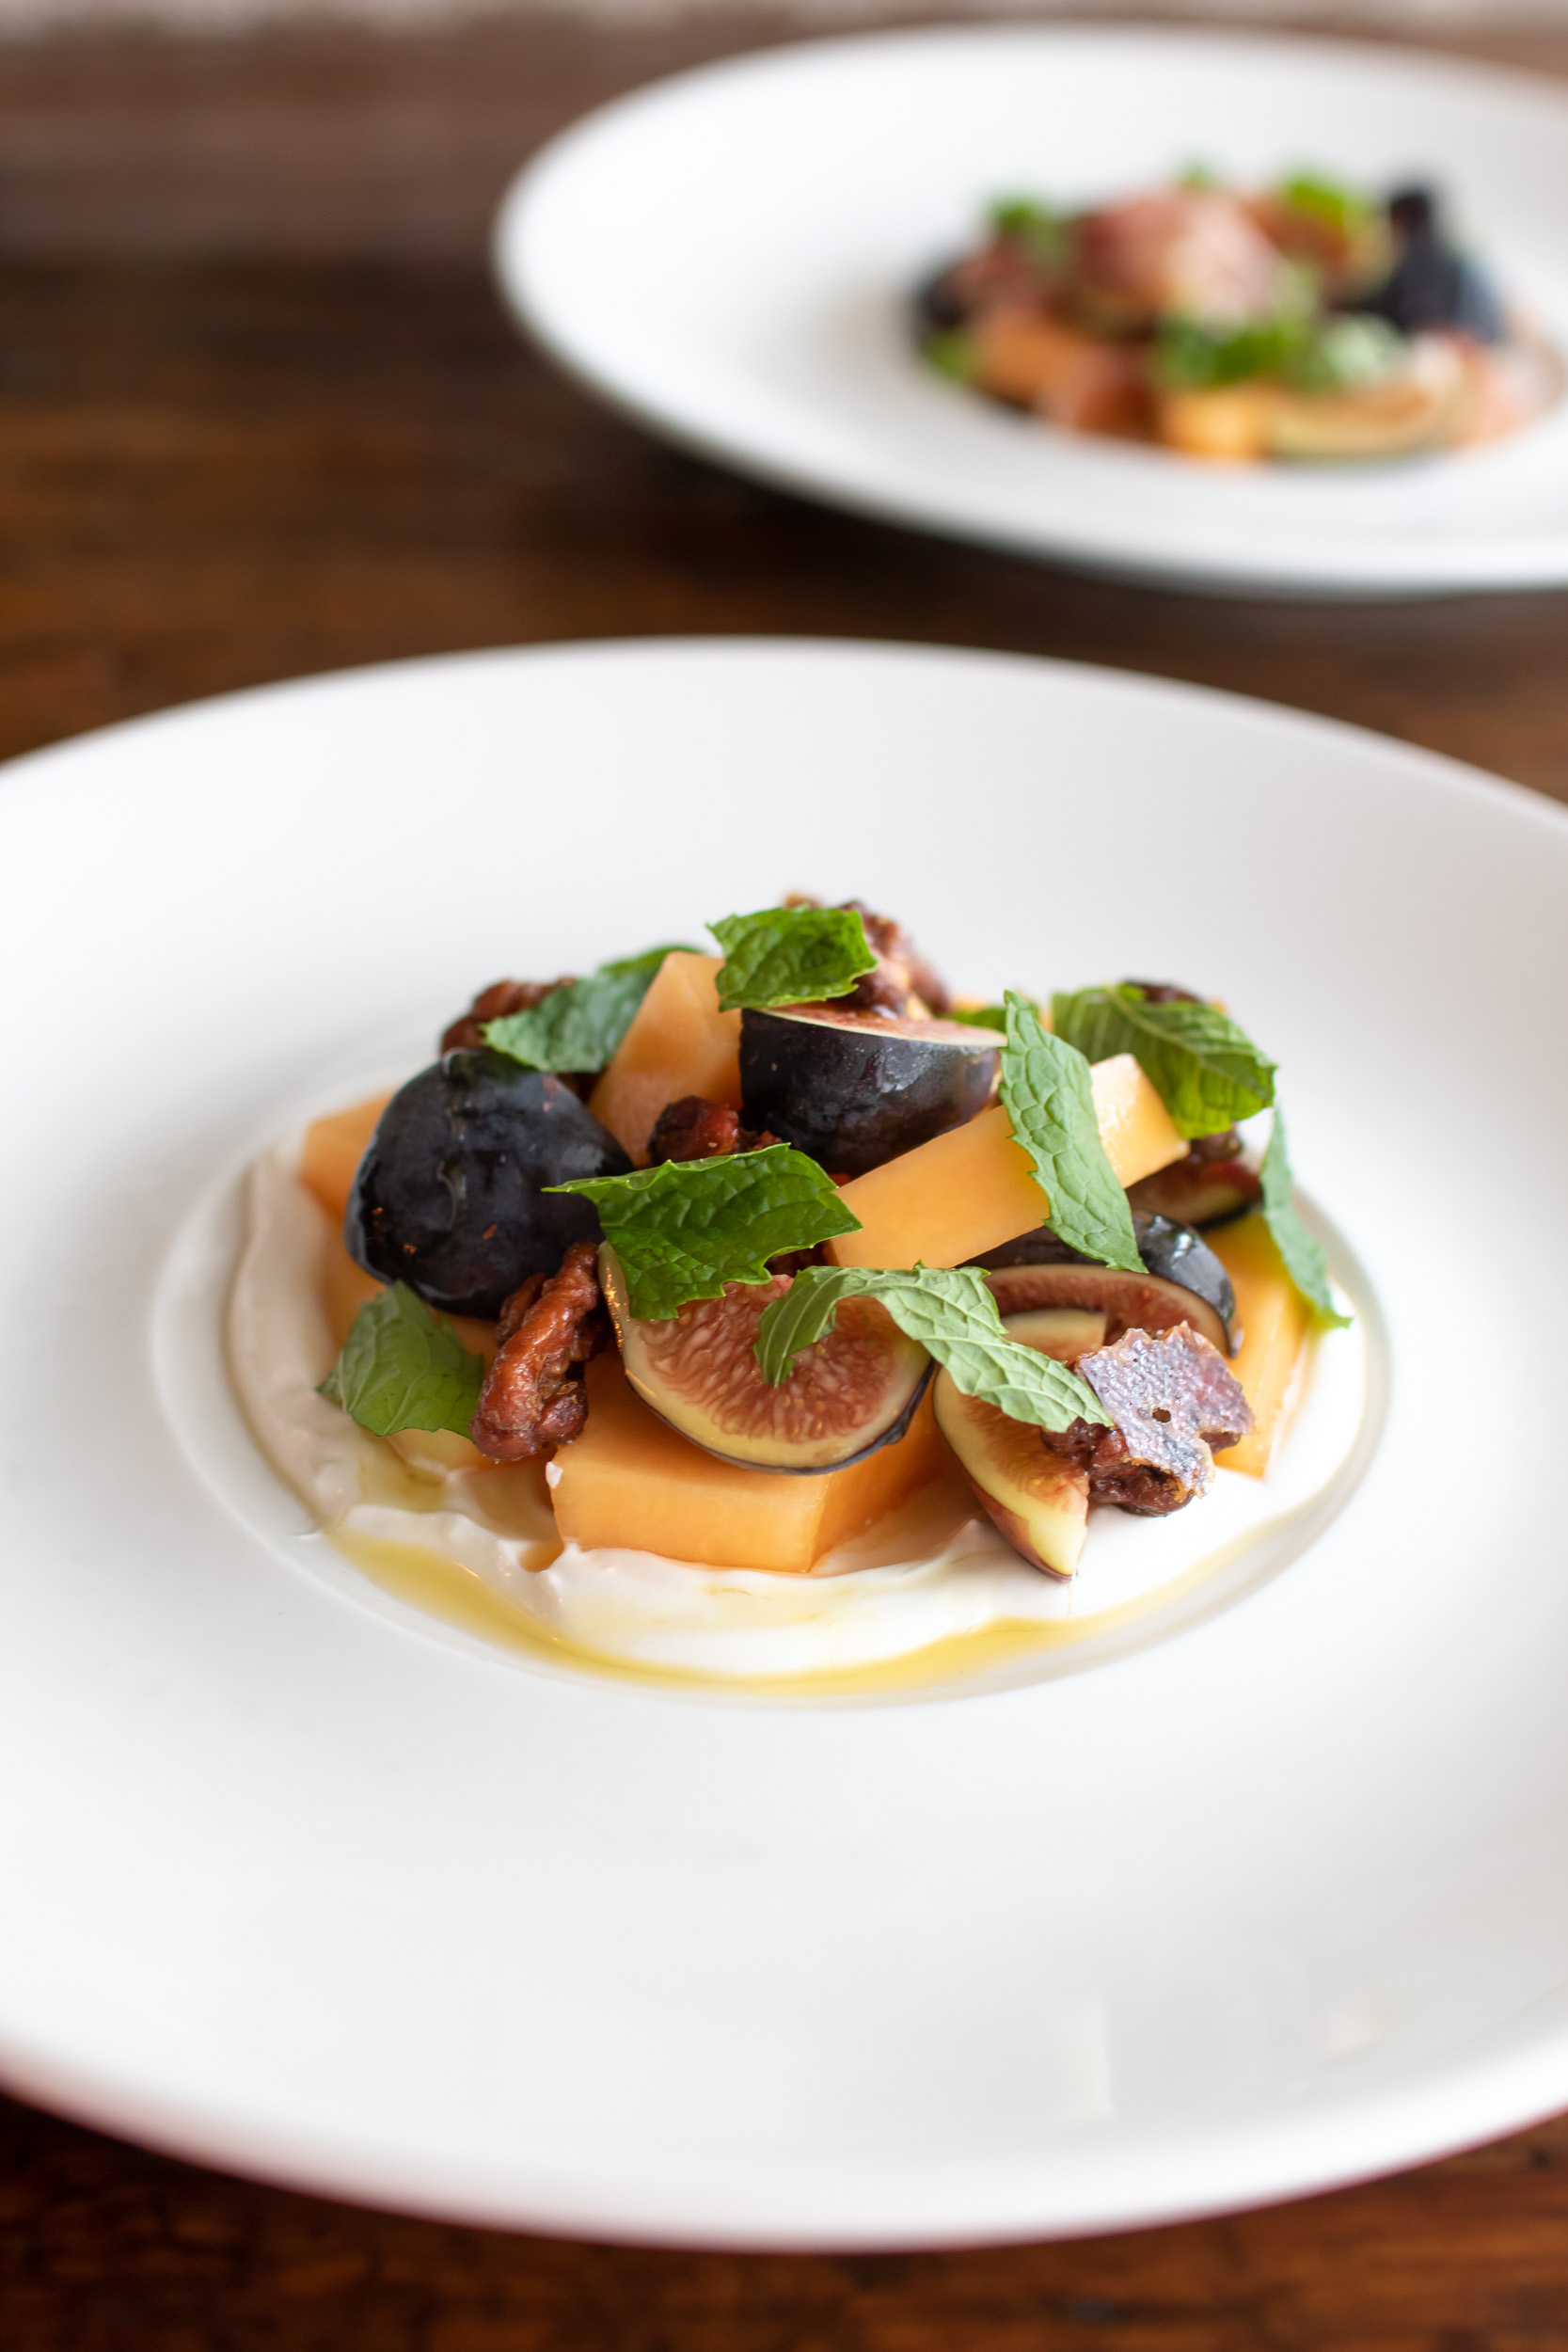 Figs & Melon with Yogurt, Honey, Candied Pecan & Mint // photo by Stephanie Cornell